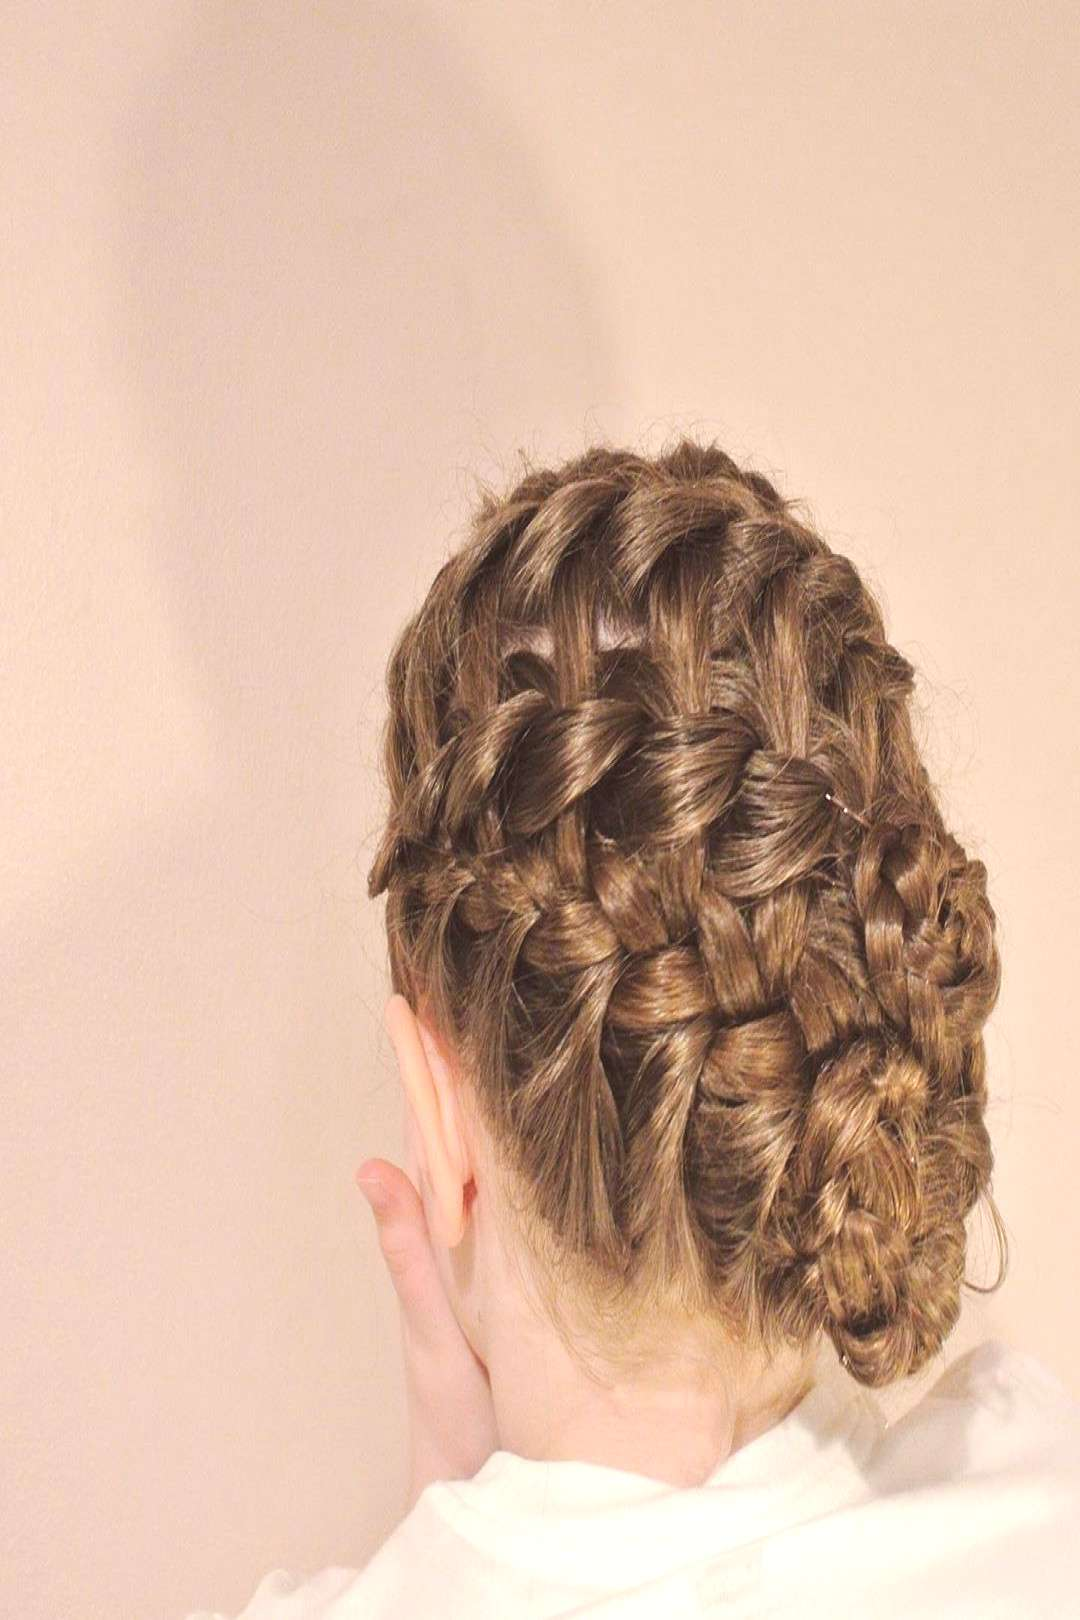 braids hairstyles on February 09 2020 one or more people and clos